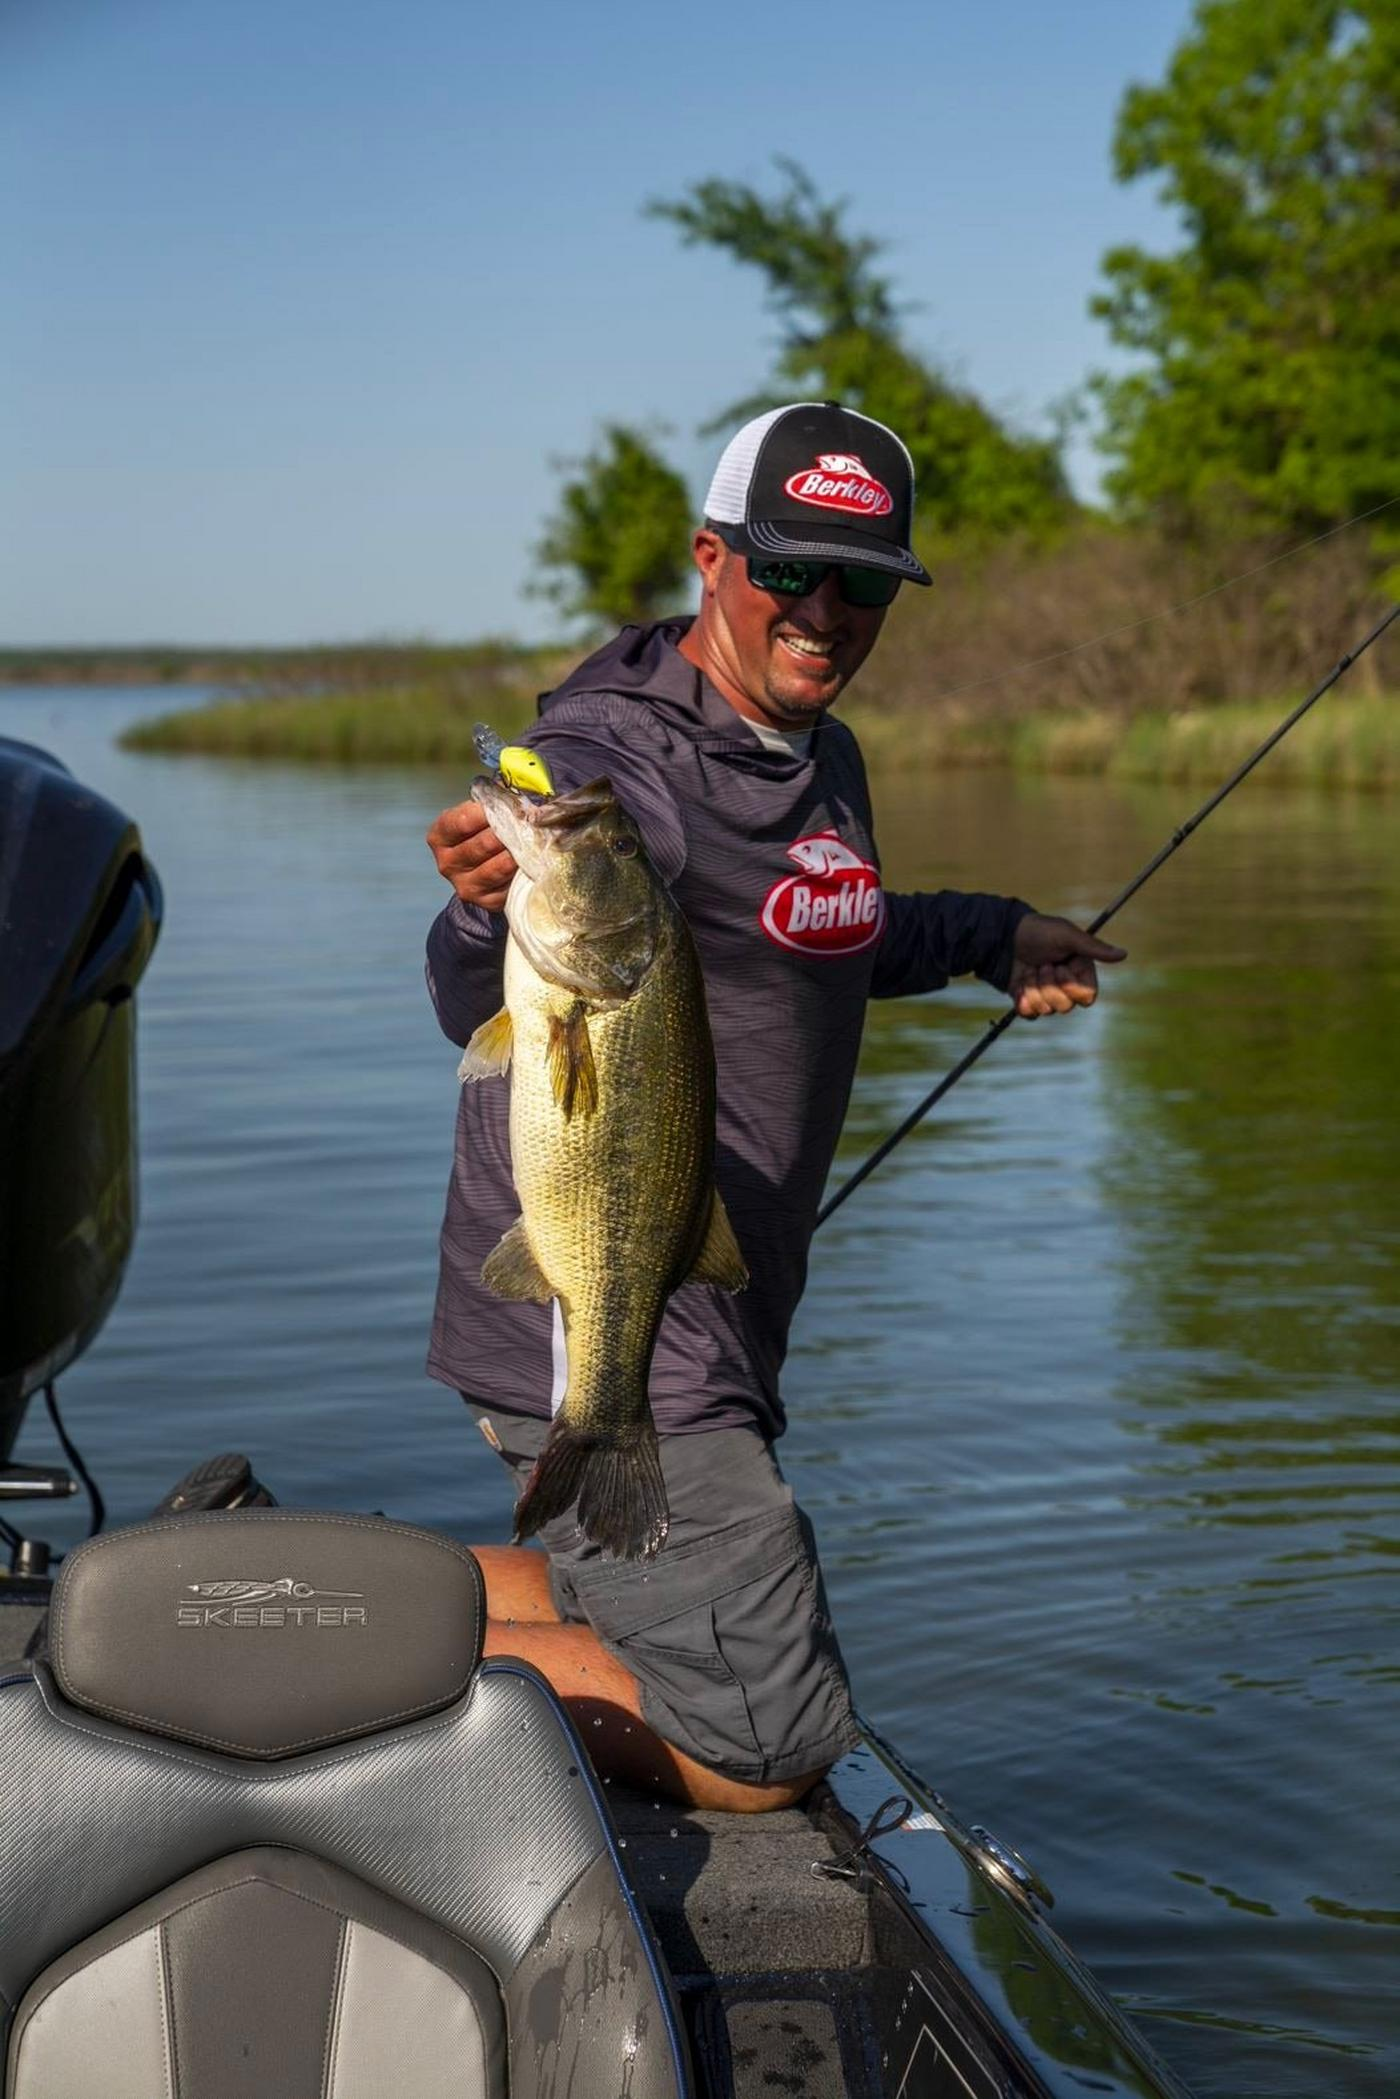 Angler in Berkley gear smiling and holding largemouth bass